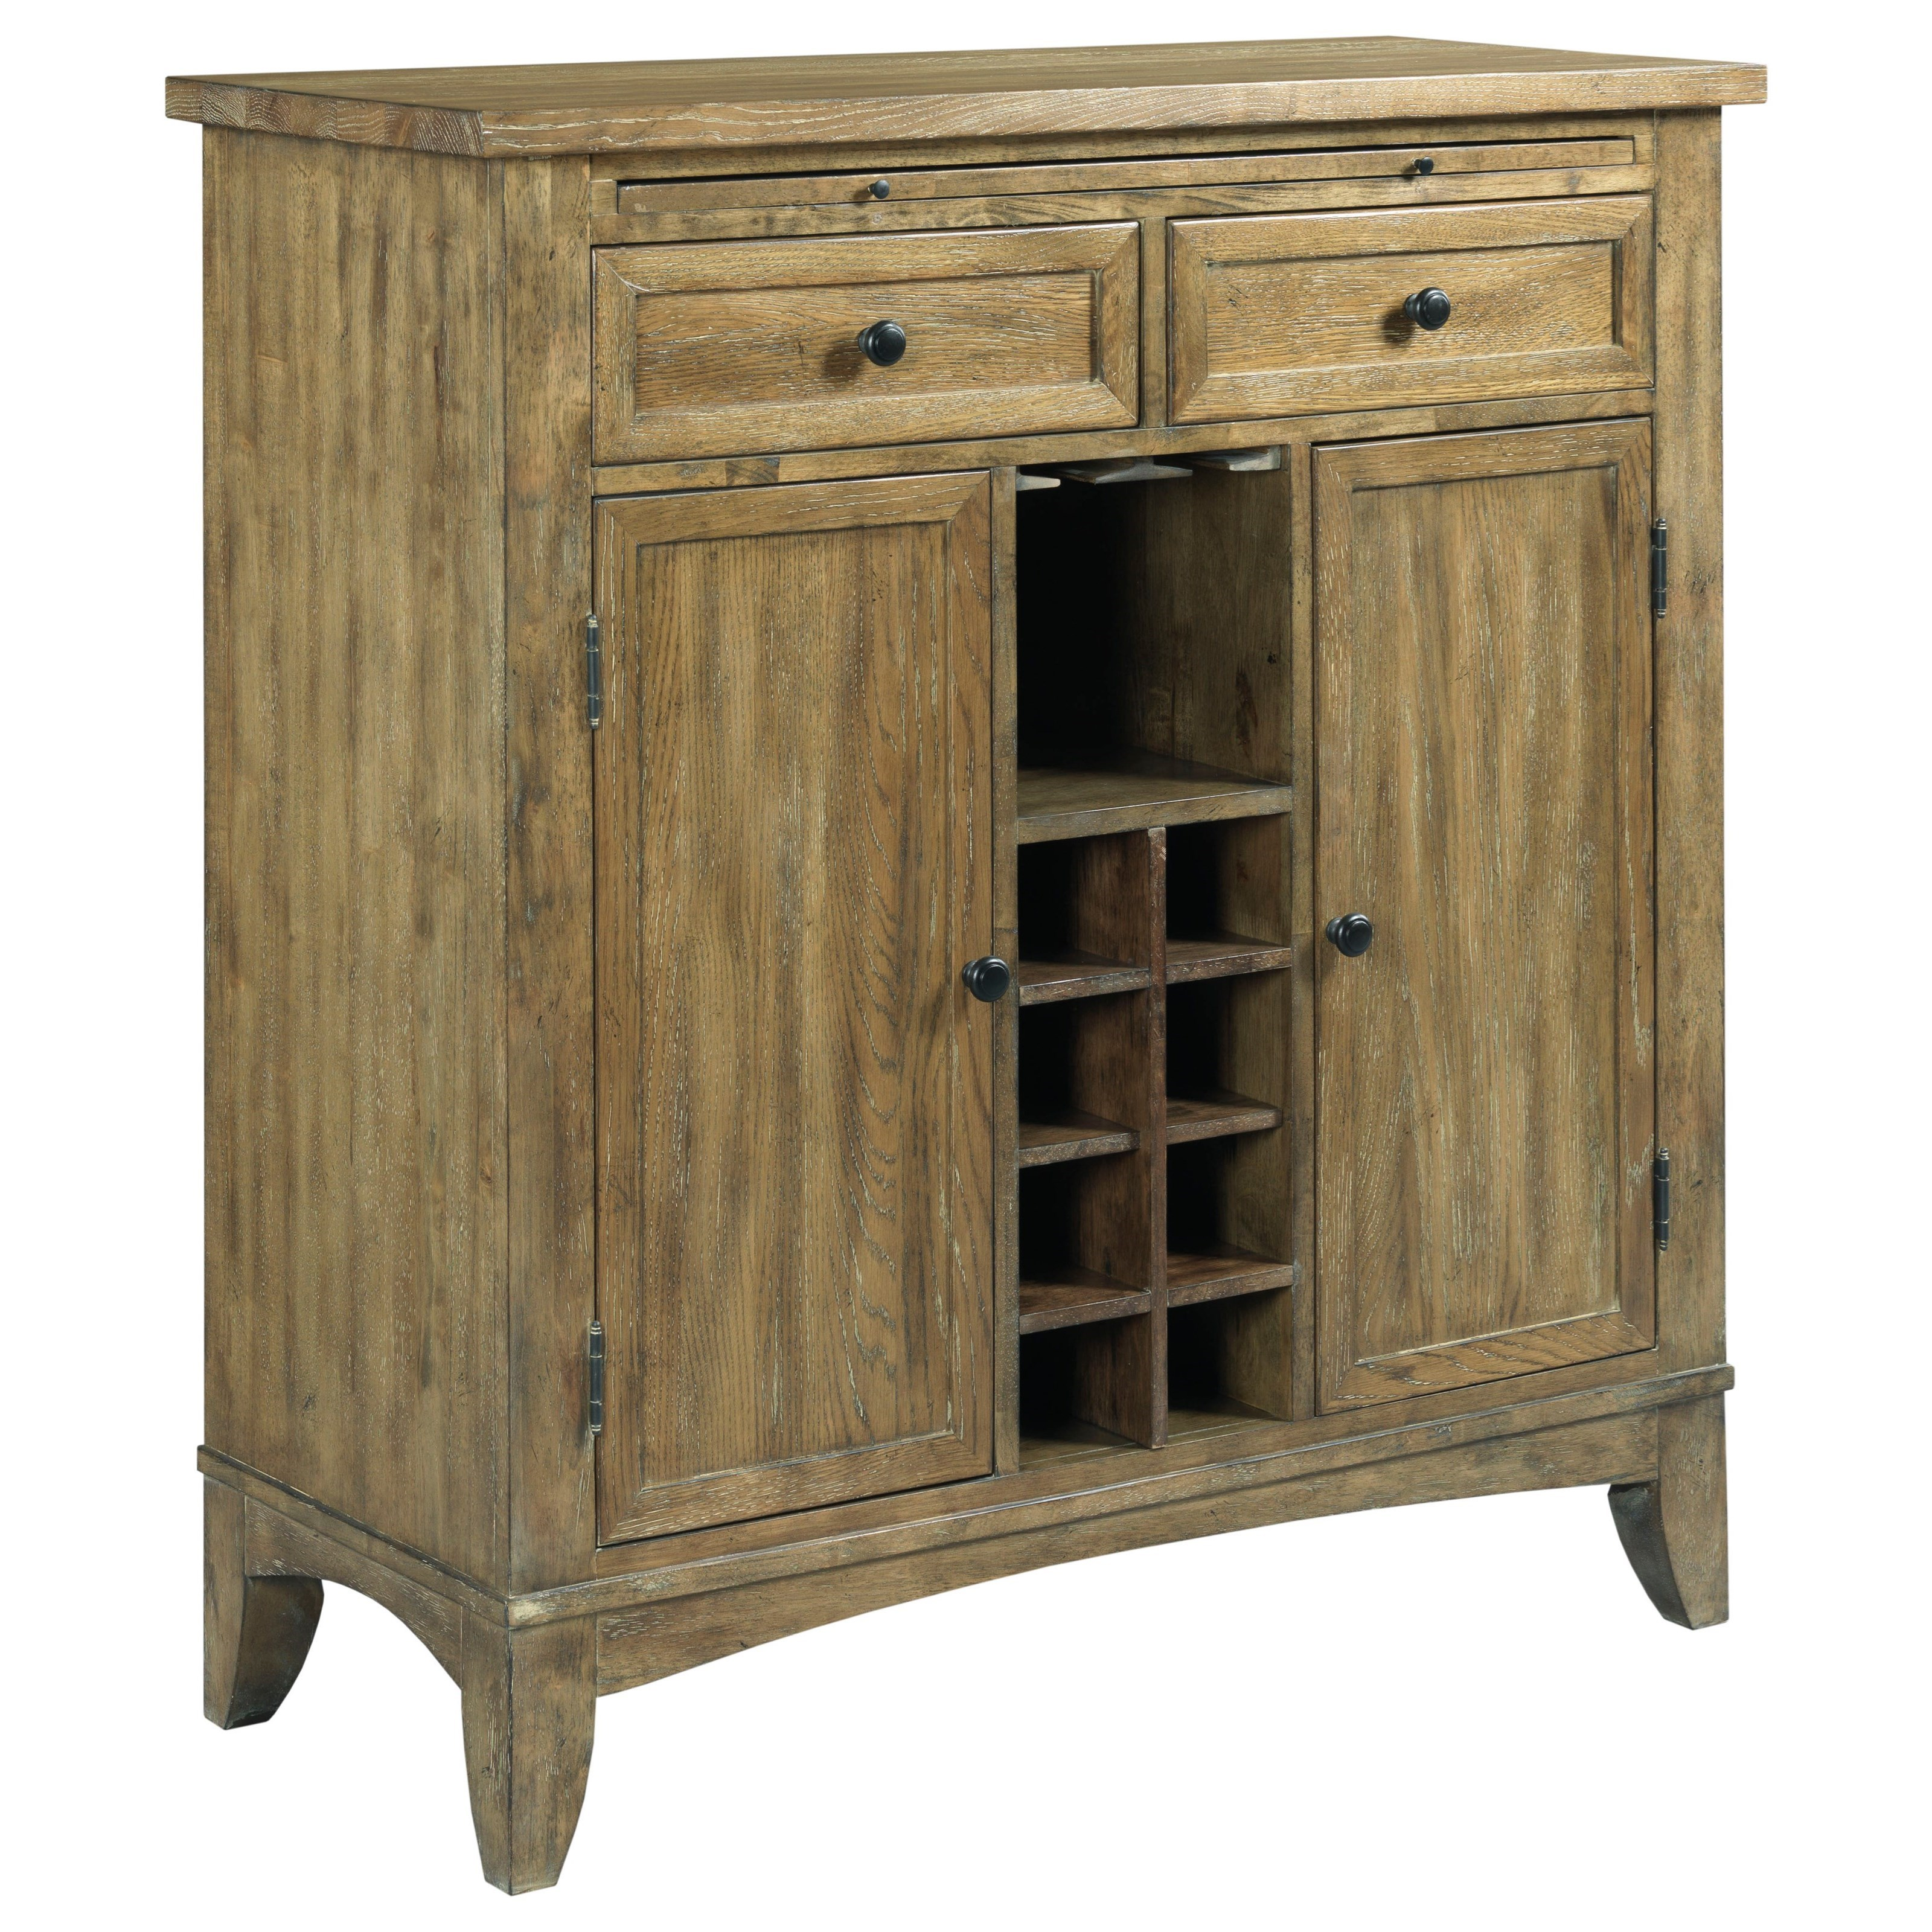 The Nook Wine Server by Kincaid Furniture at Northeast Factory Direct